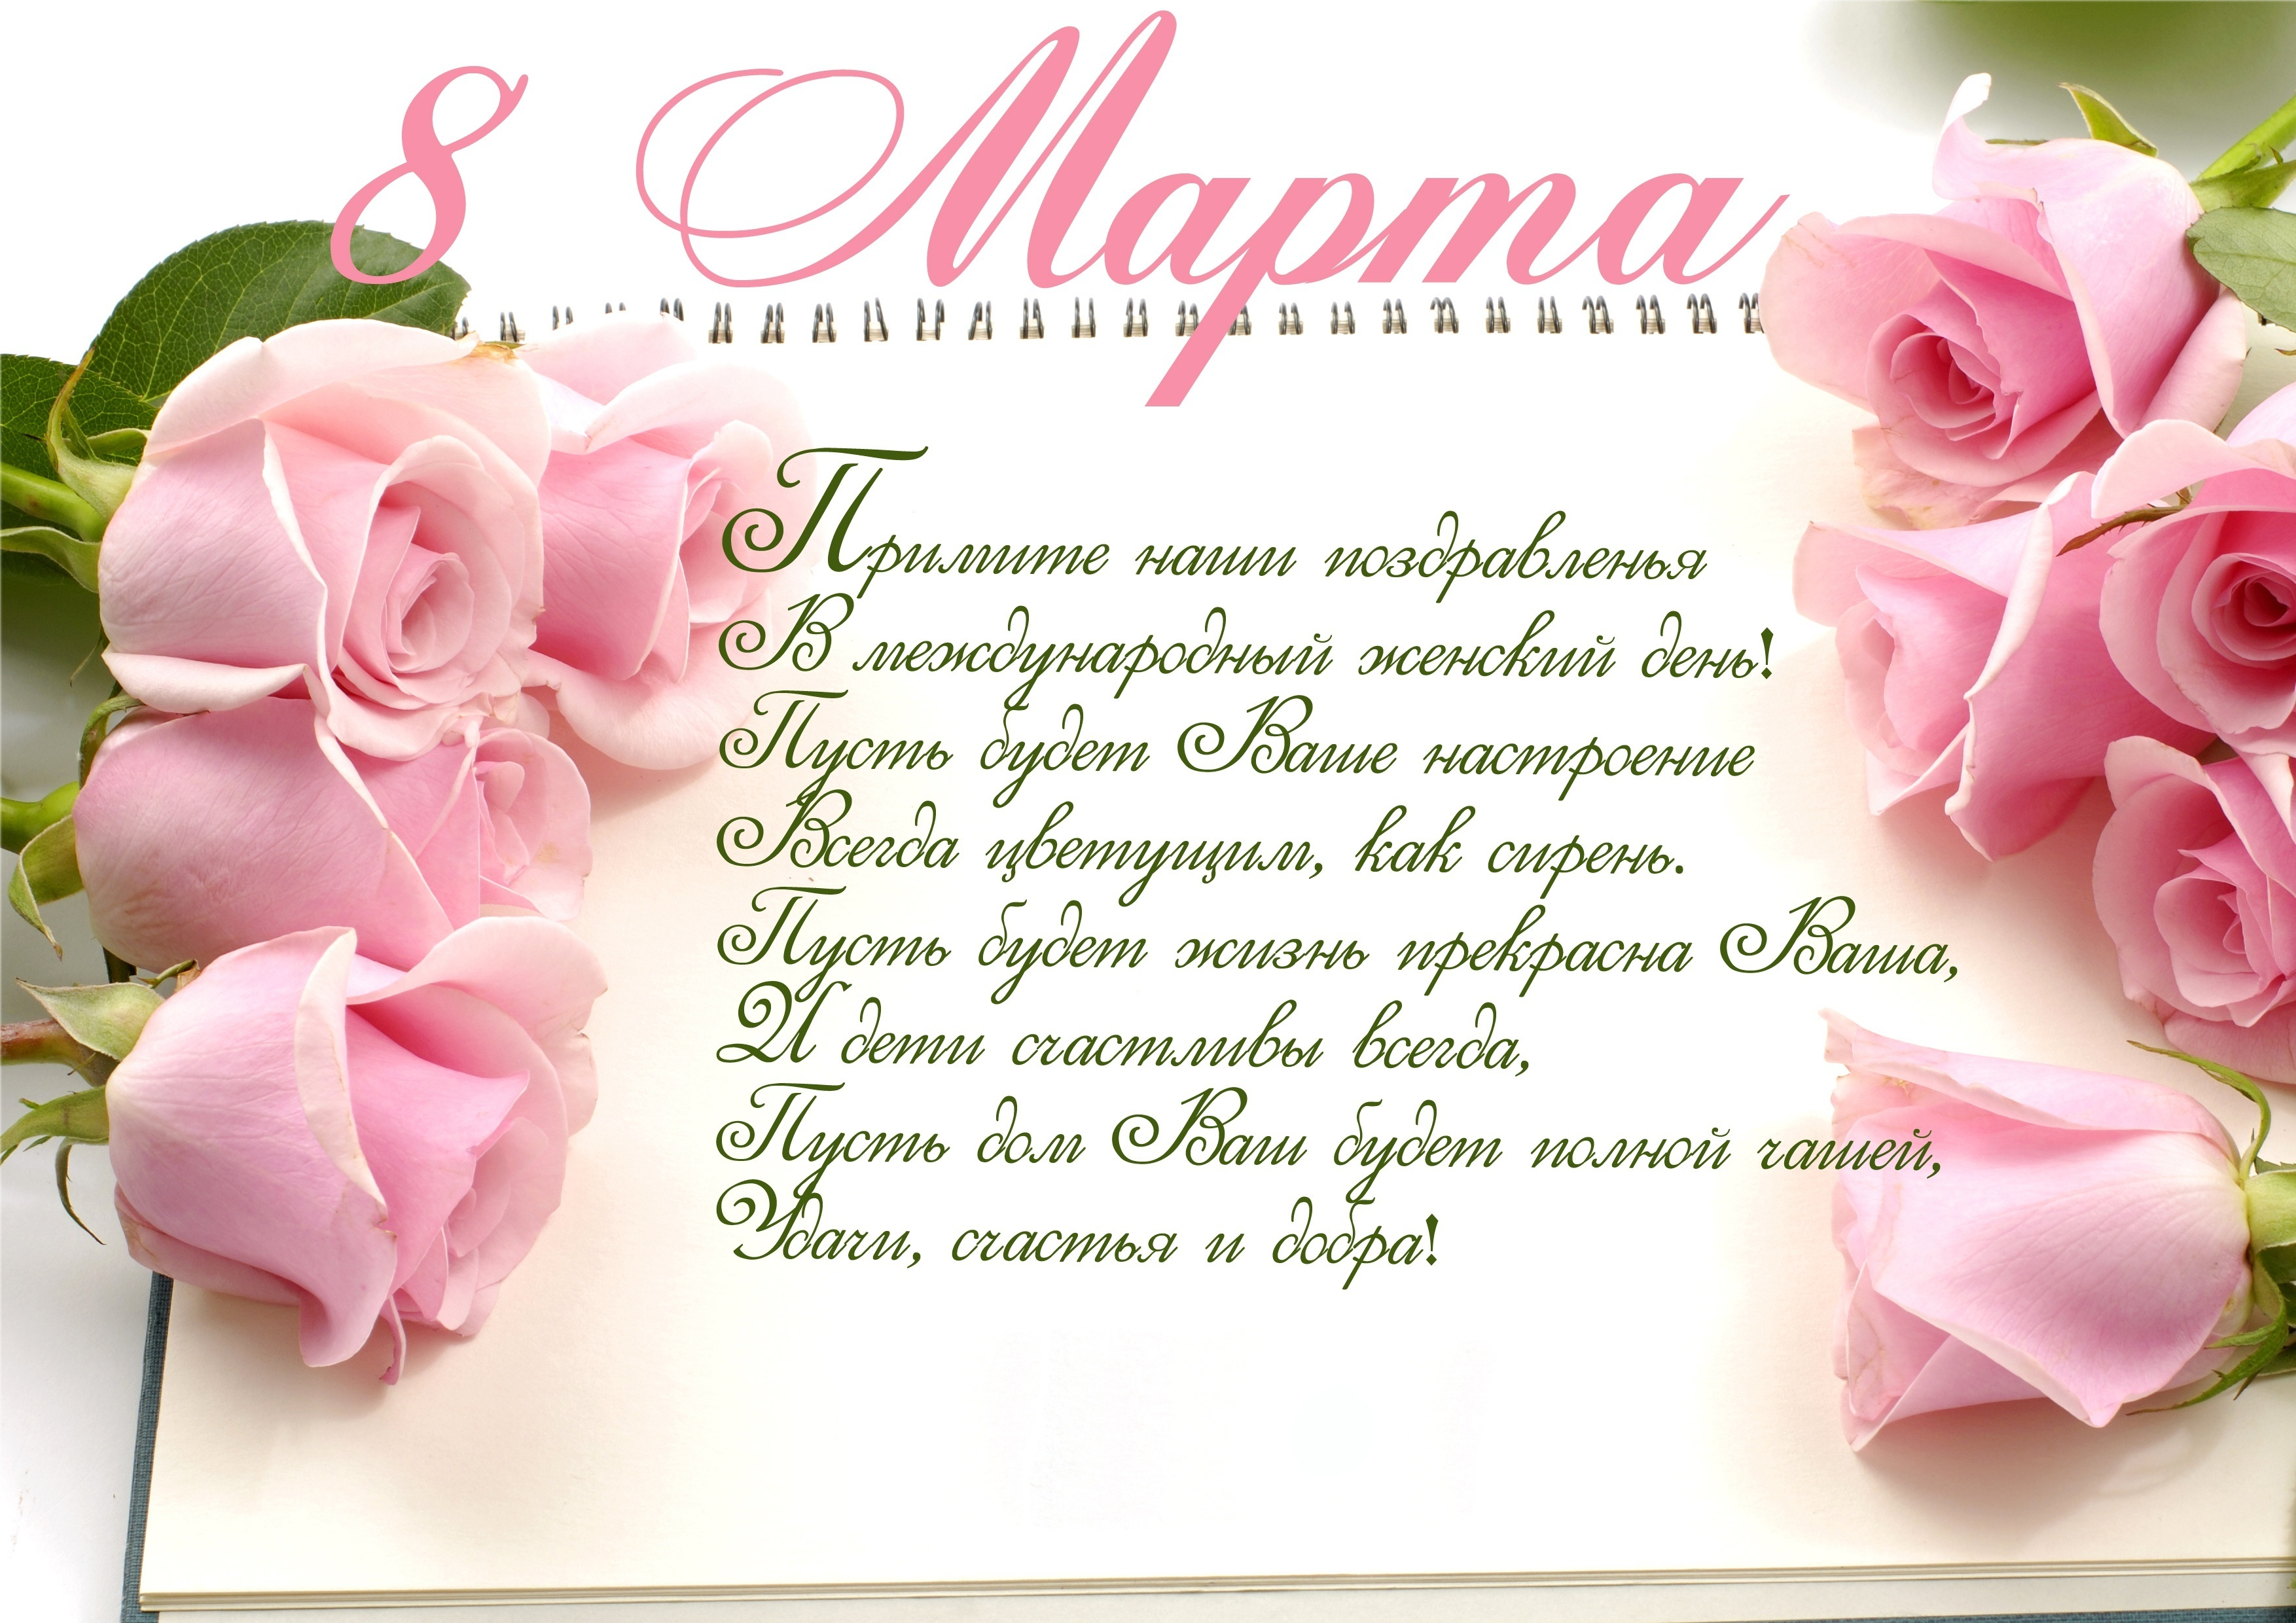 2018Holidays   International Womens Day Beautiful greeting card on March 8 with pink roses 122450  1 - С Праздником !!!!!